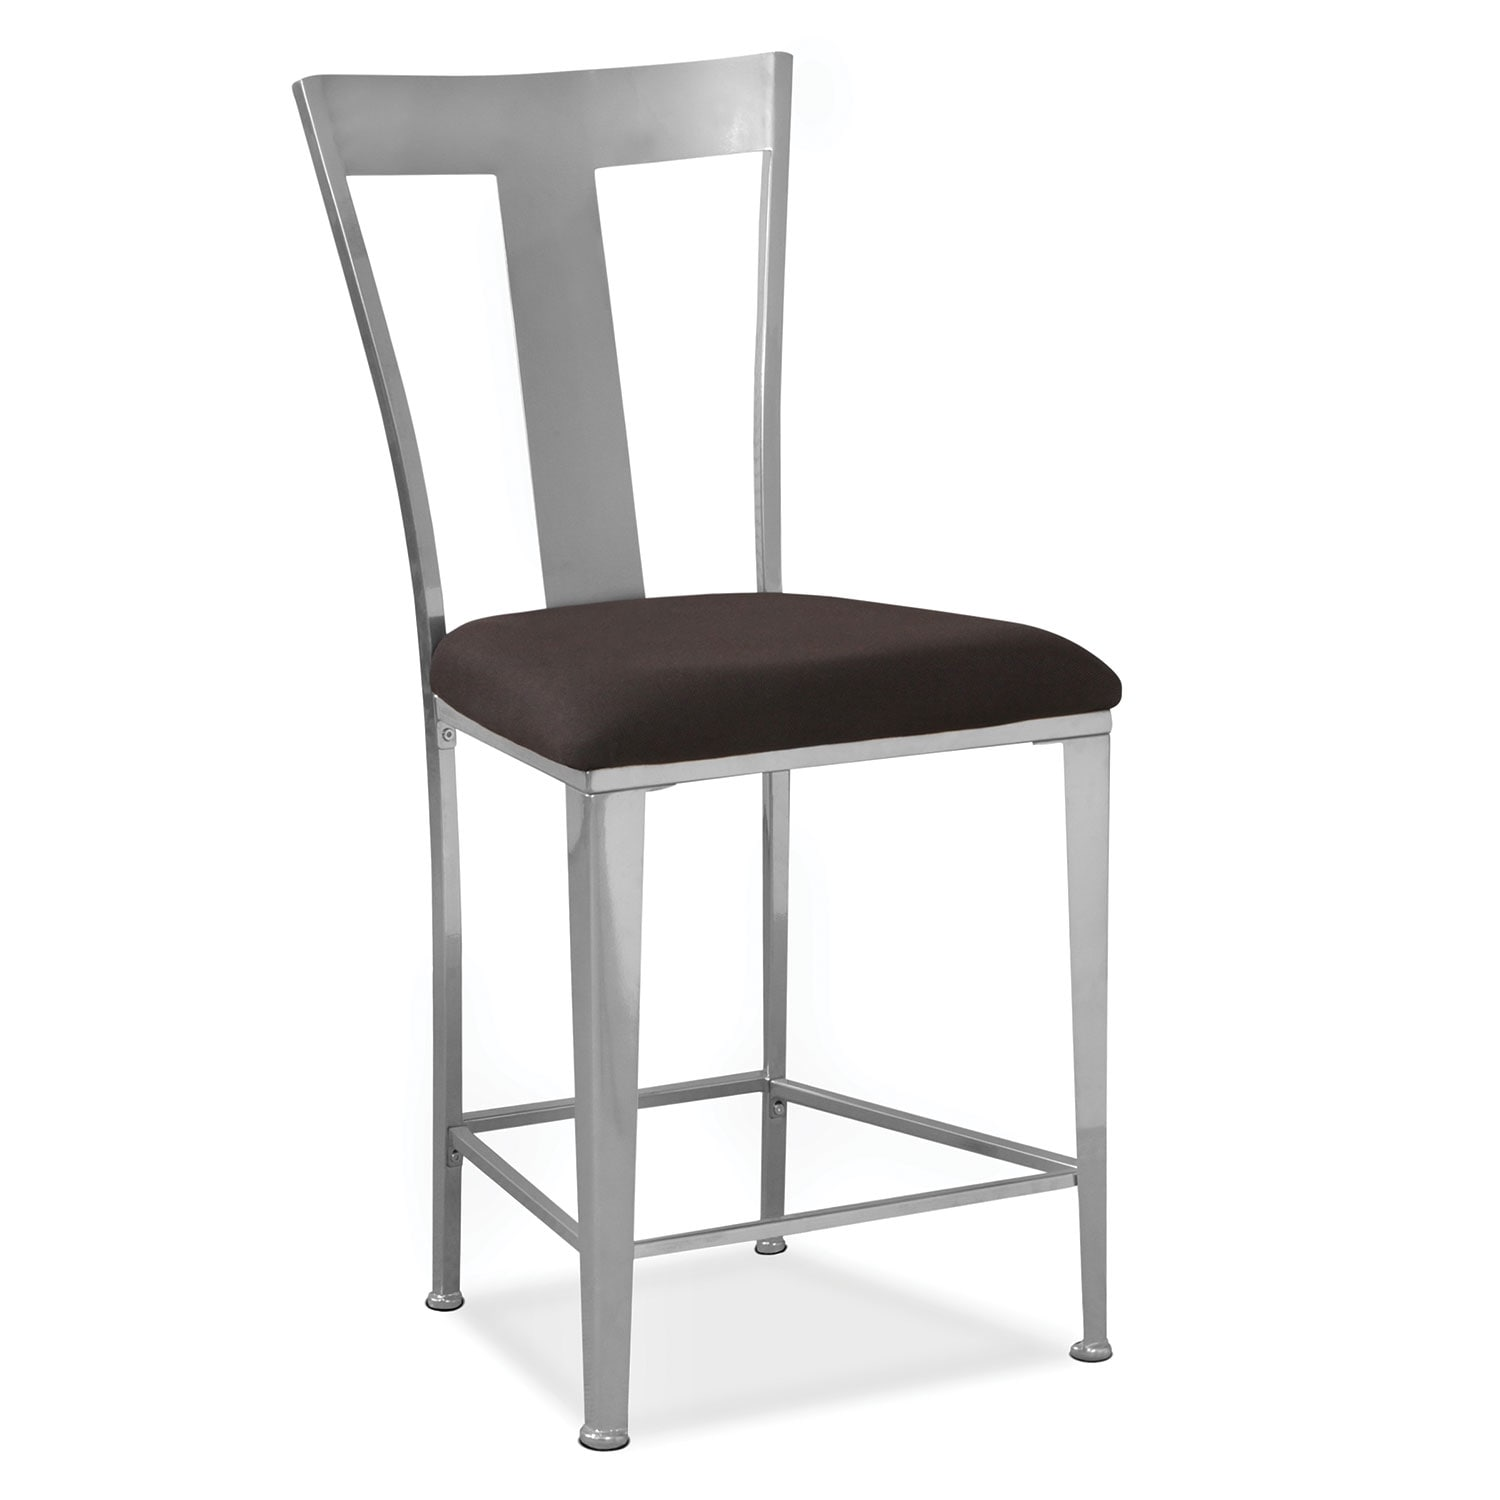 Silverton Counter-Height Stool - Silver